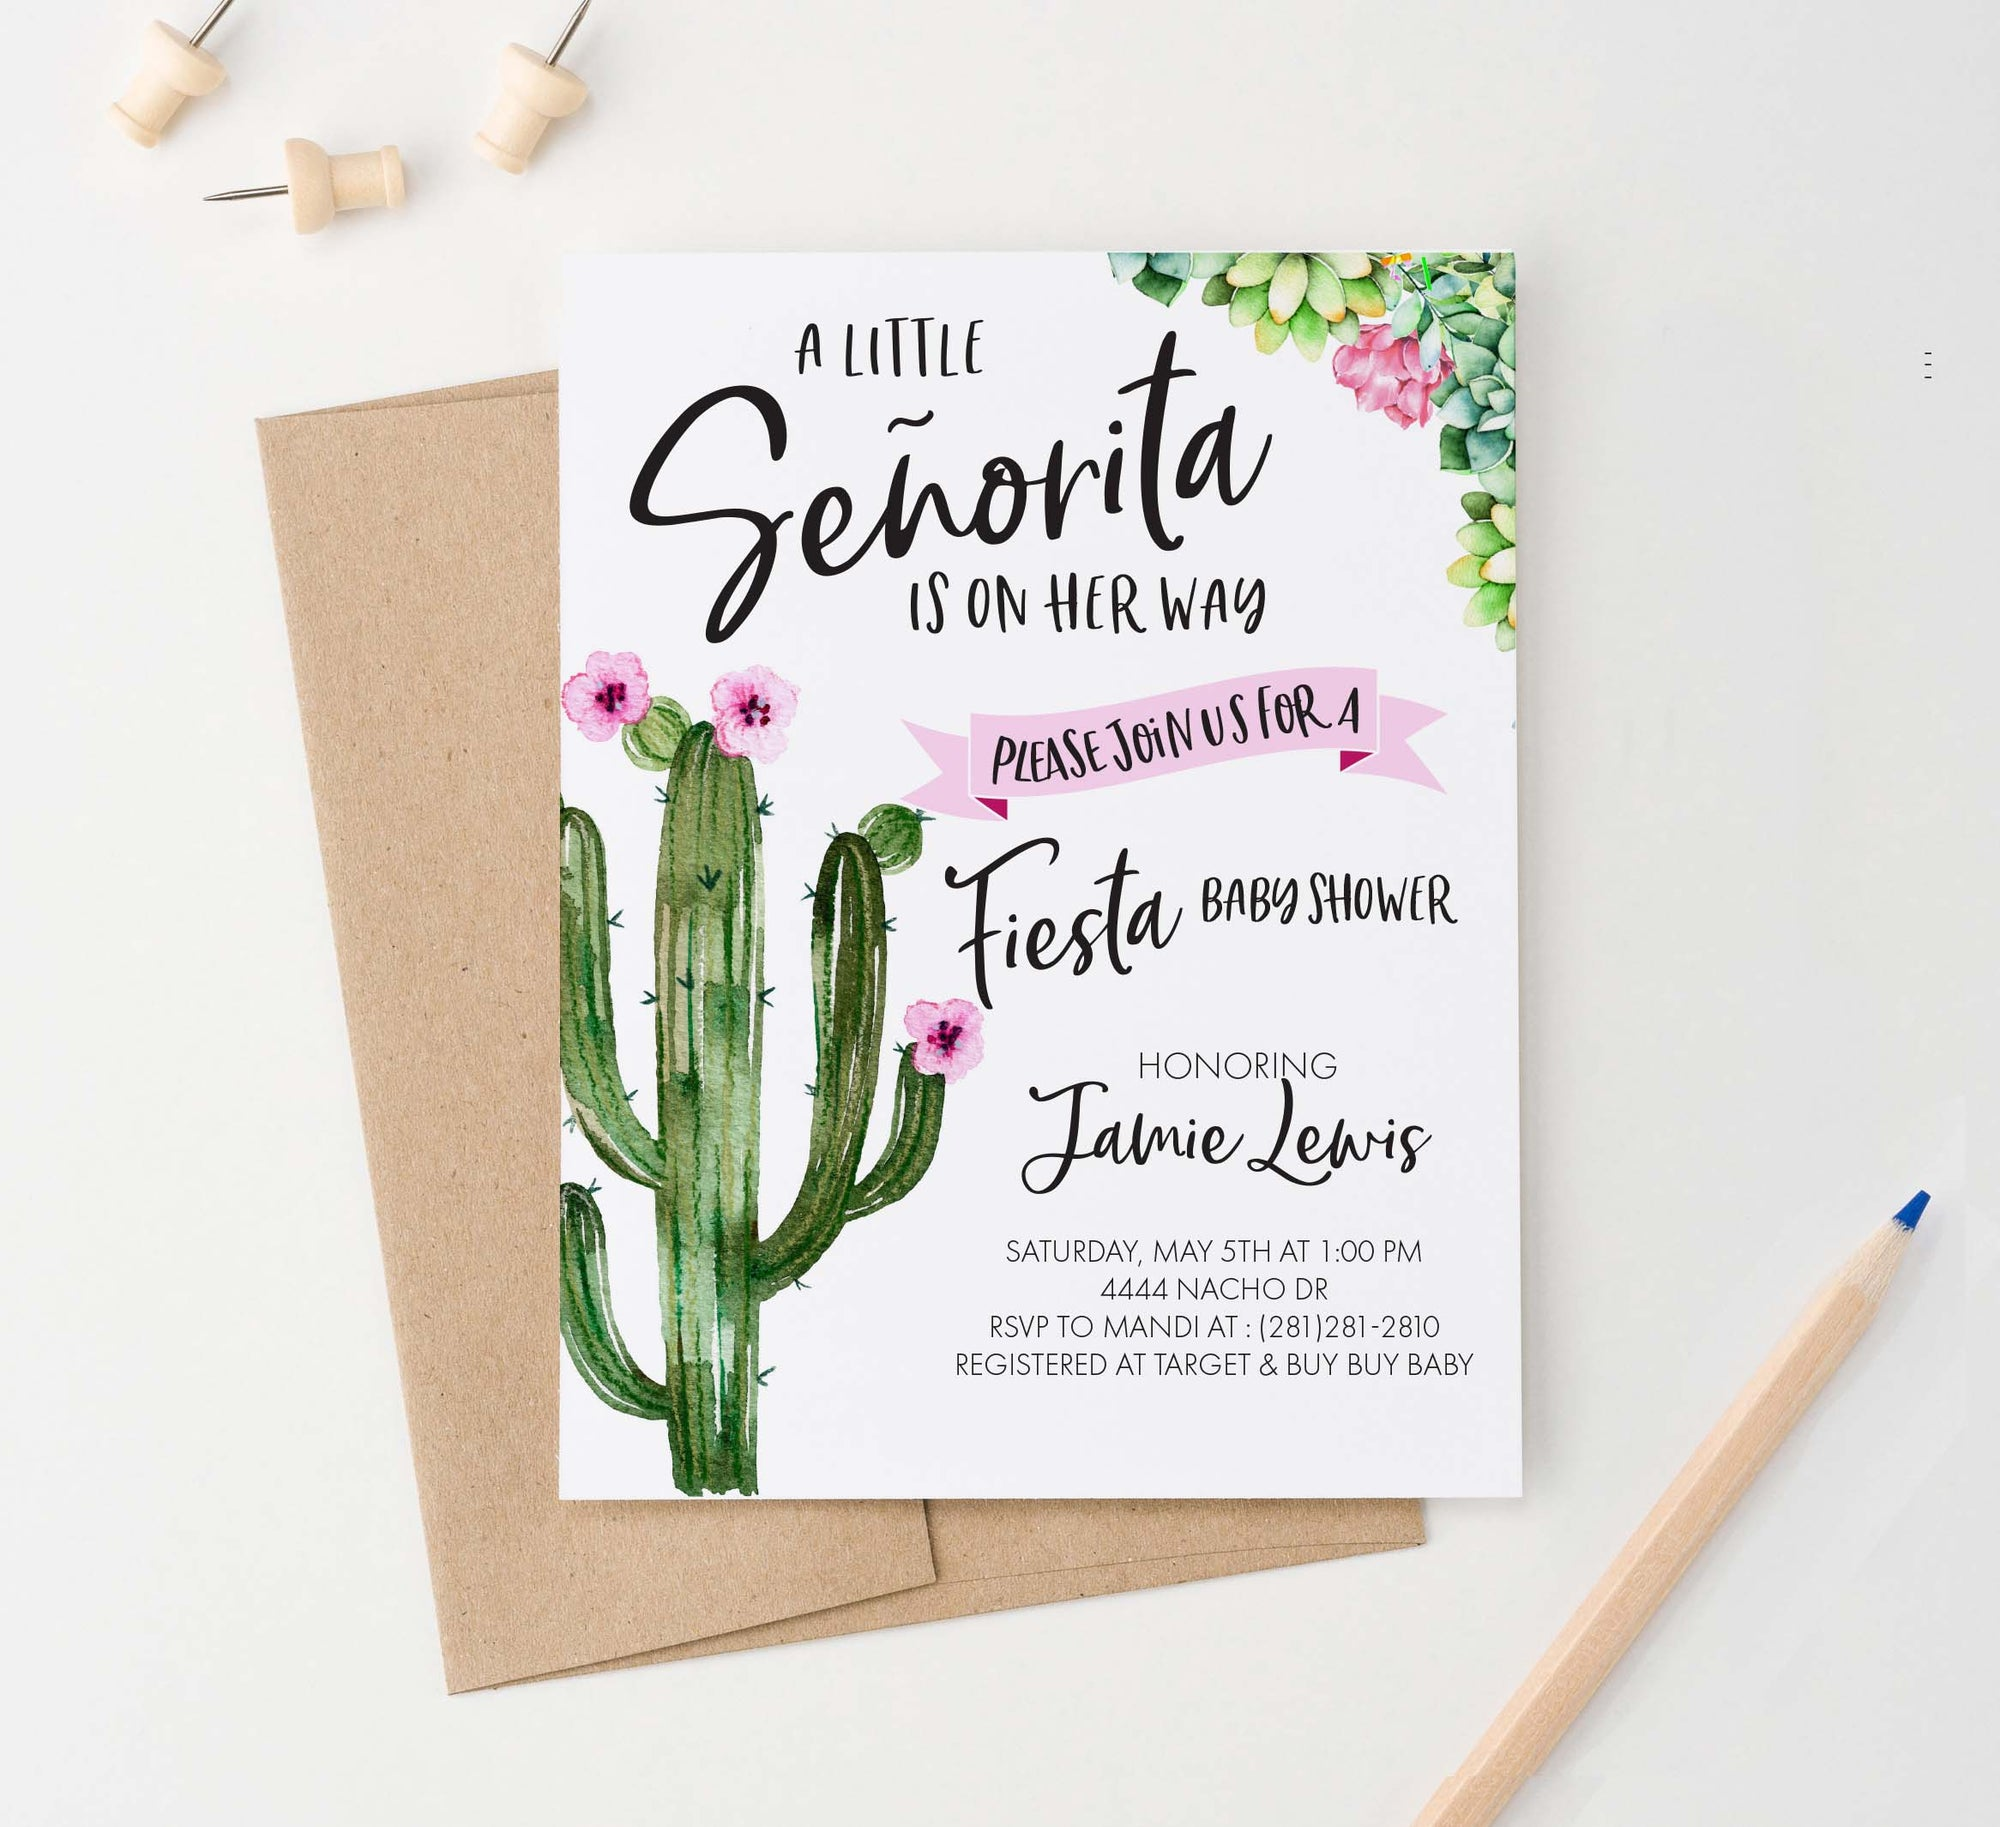 BSI019 fiesta cactus baby shower invitation for girl floral elegant